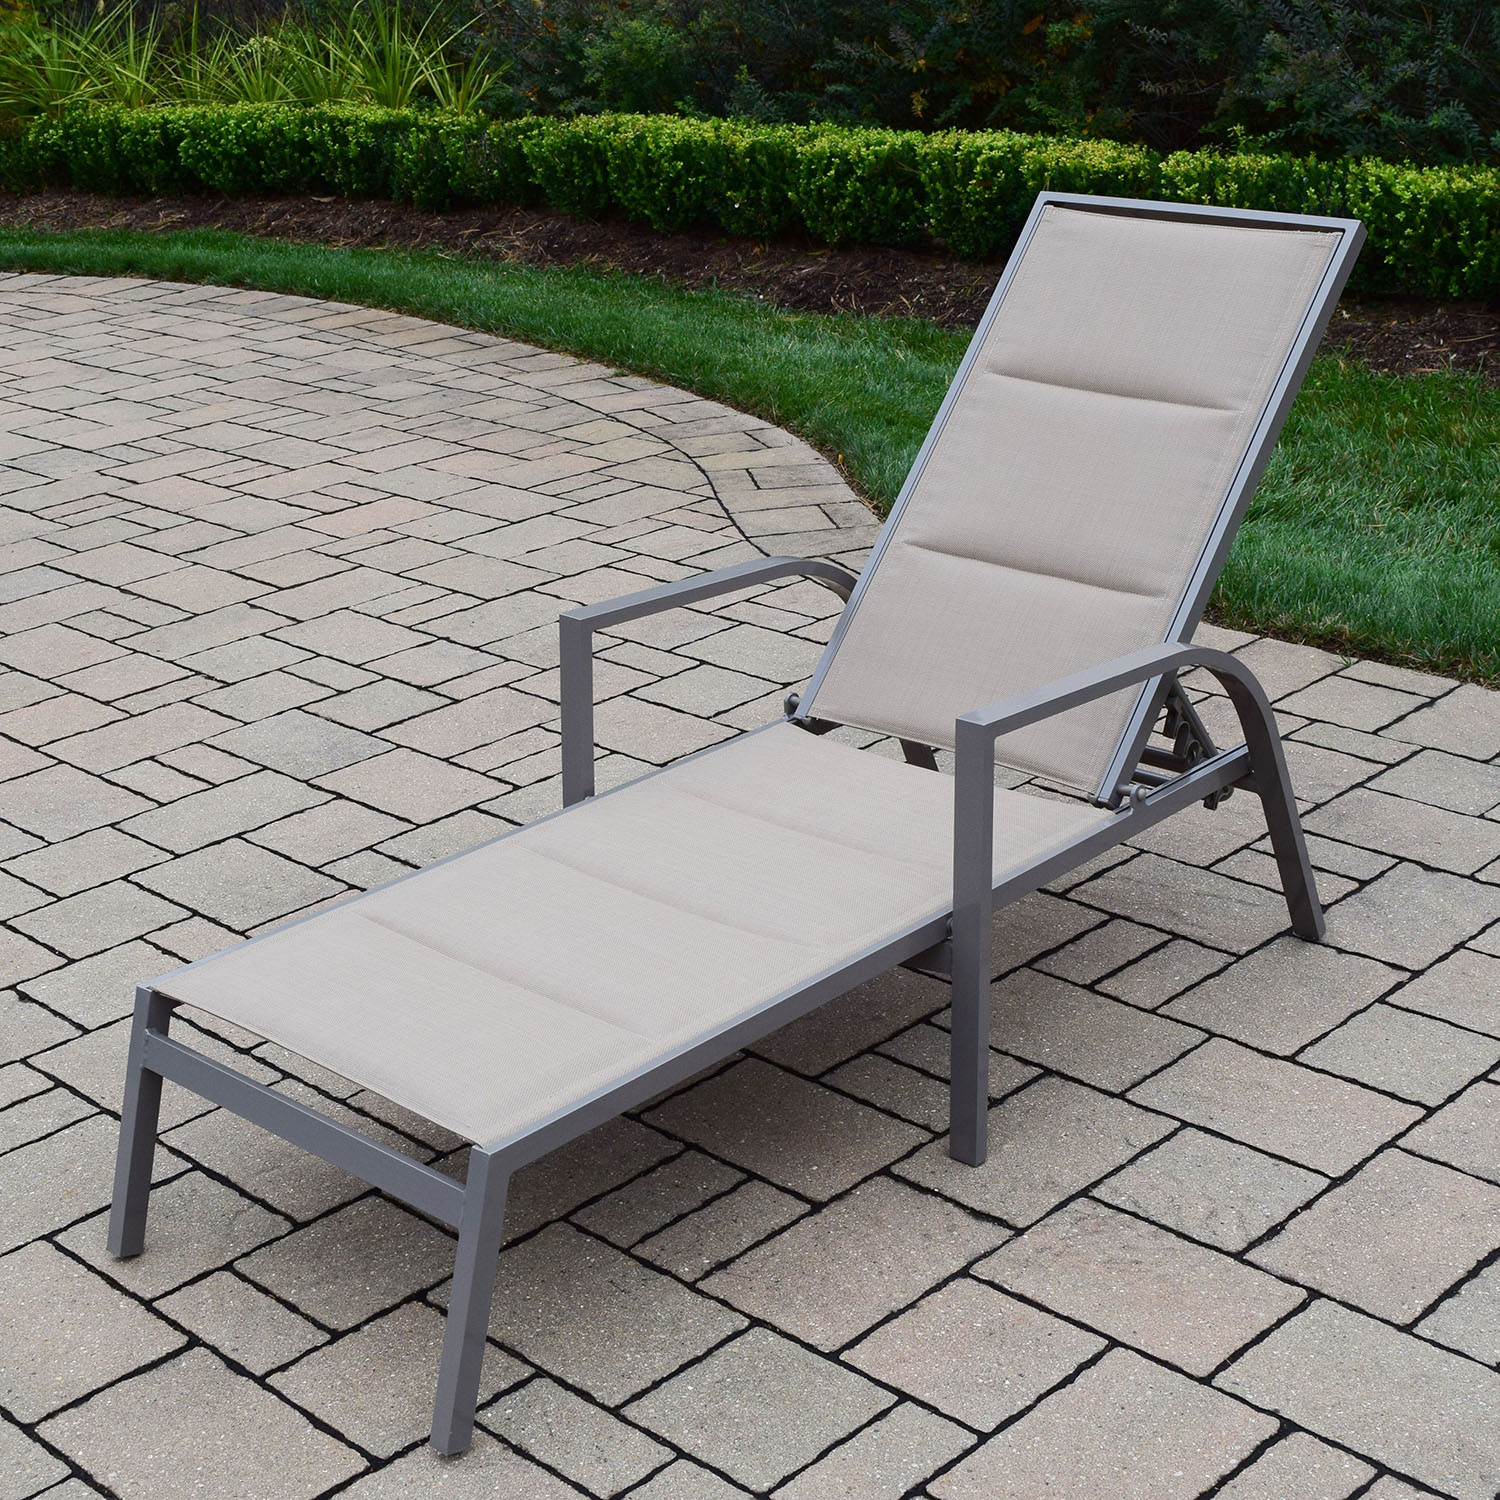 Sling Chaise Lounge Chair Oakland Living Padded Sling Aluminum Chaise Lounge Chair